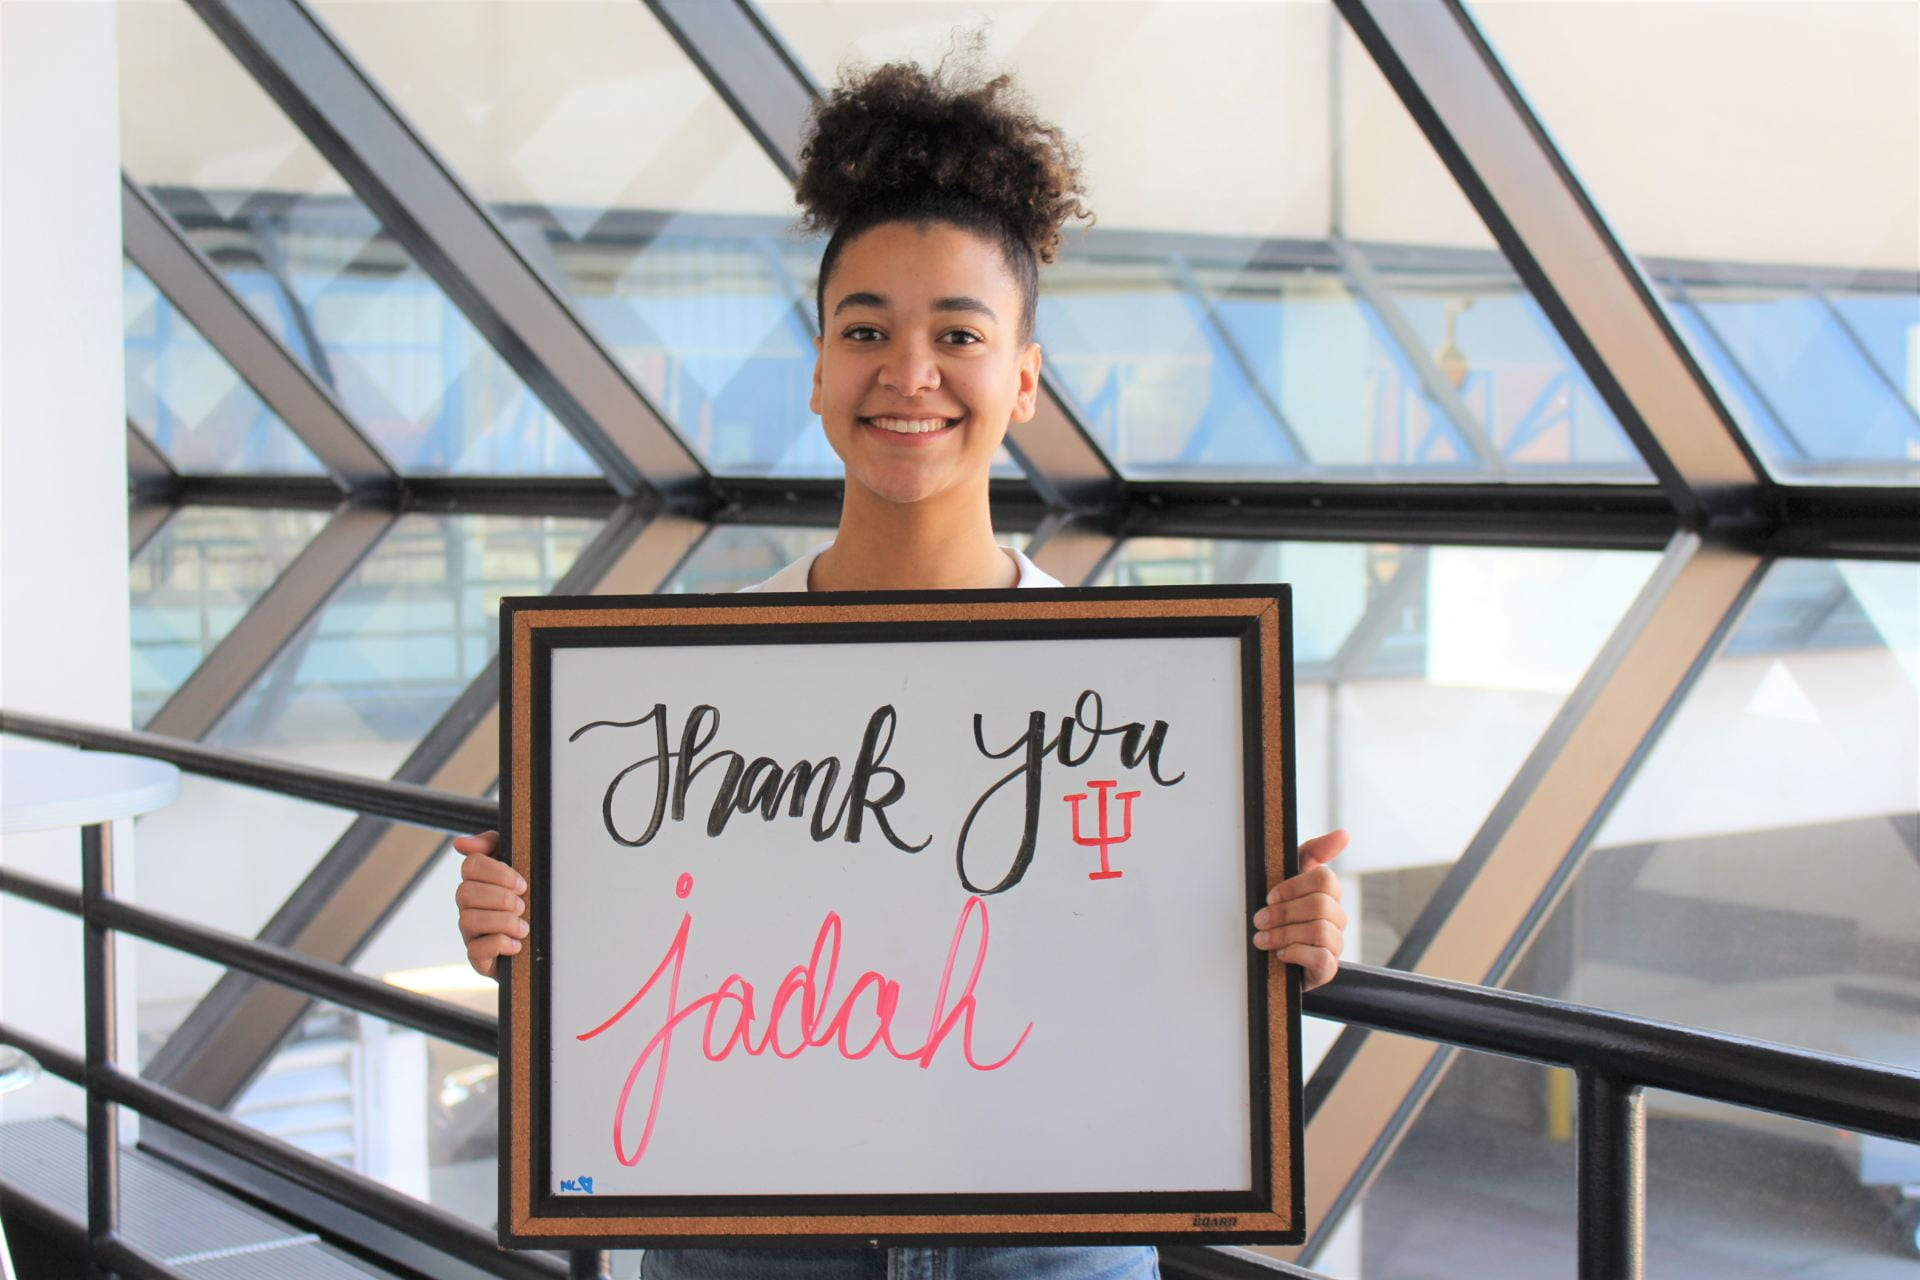 Jadah holding a thank you sign